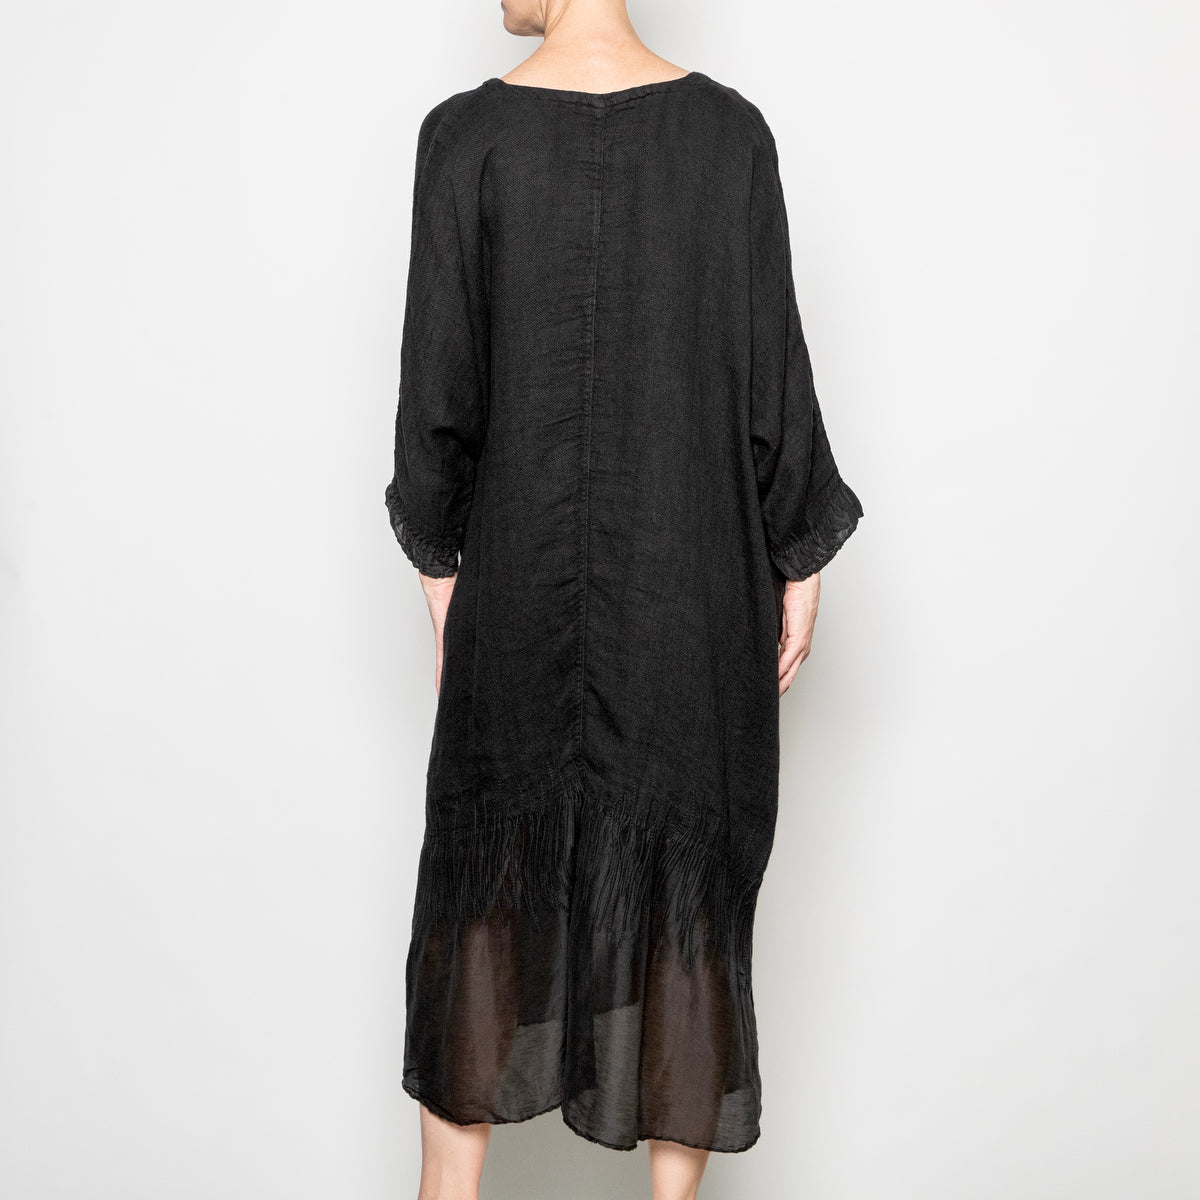 Peacock Ways Annabelle Dress in Black